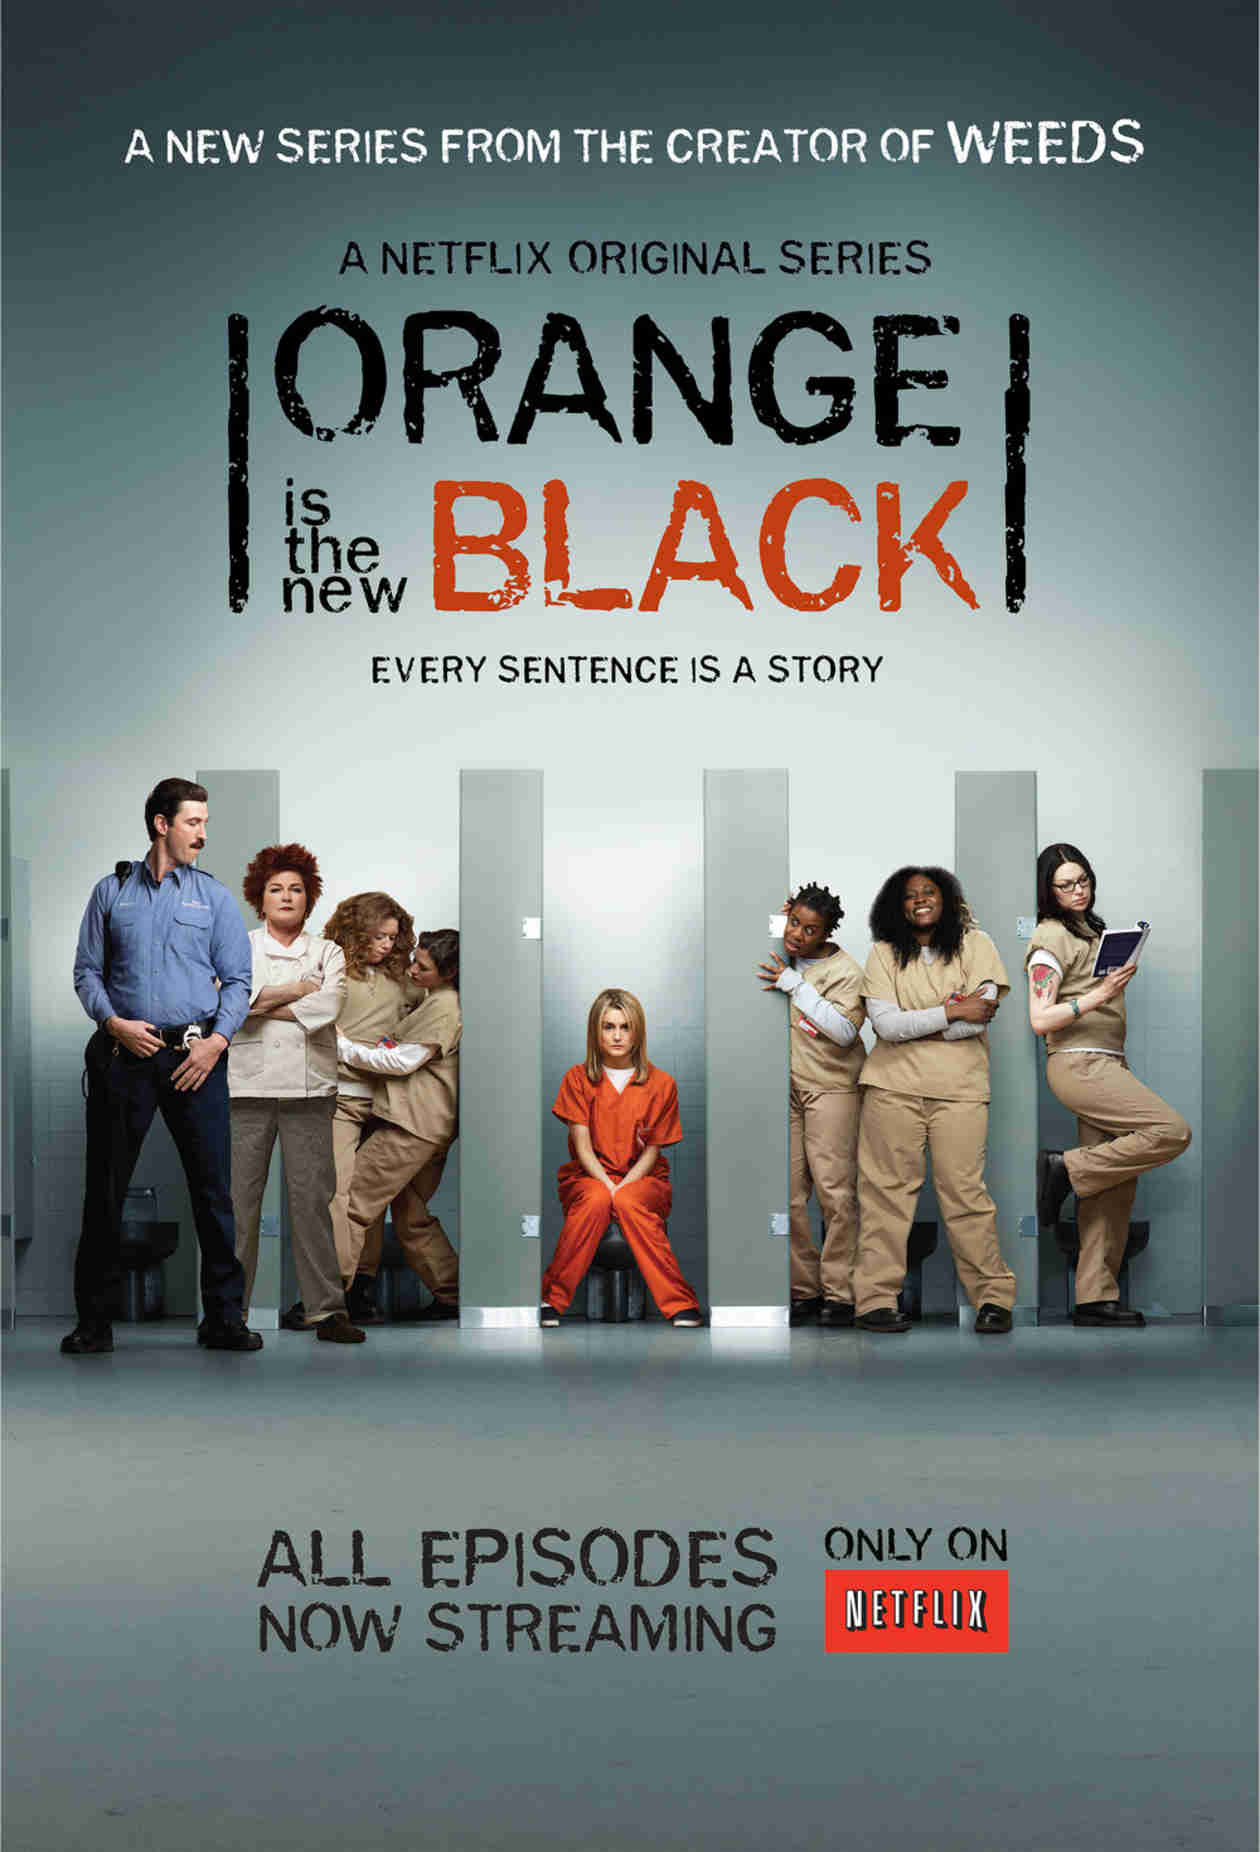 Orange Is the New Black Season 2: 8 Cliffhangers and Burning Questions to Remember